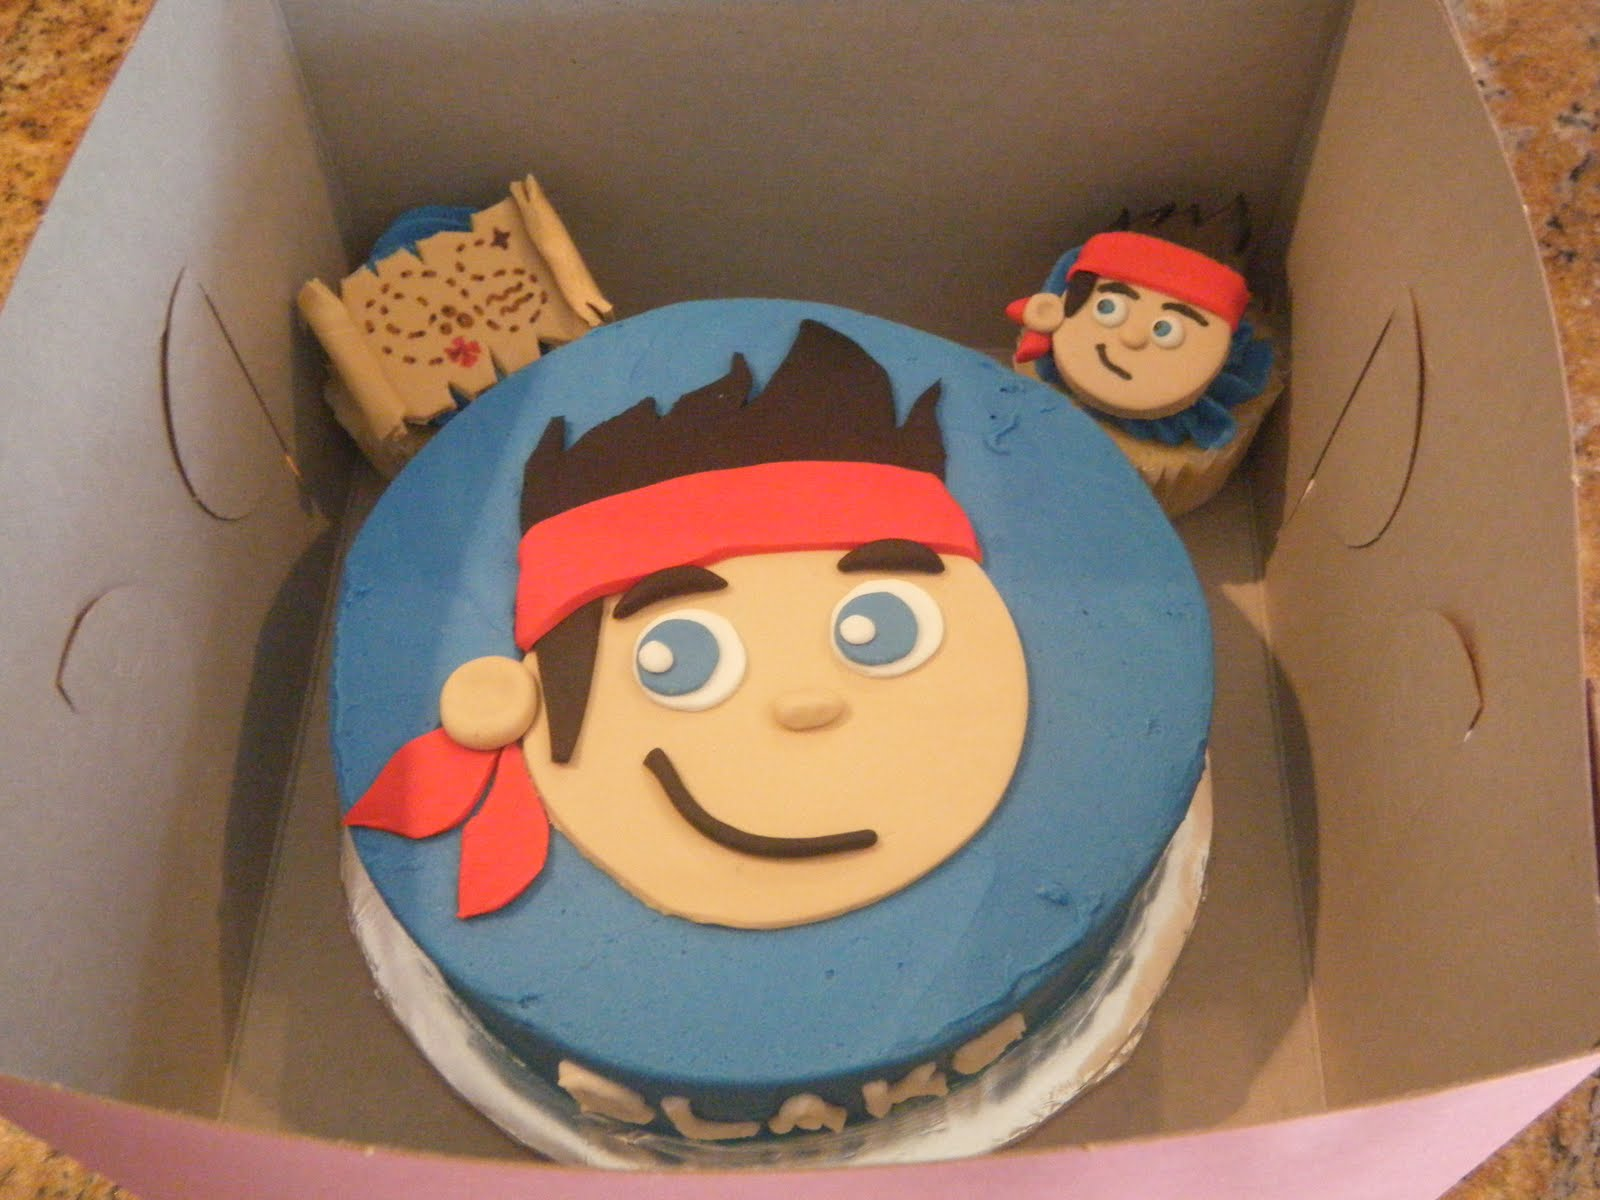 jake and the neverland pirates tiered cake - photo #34